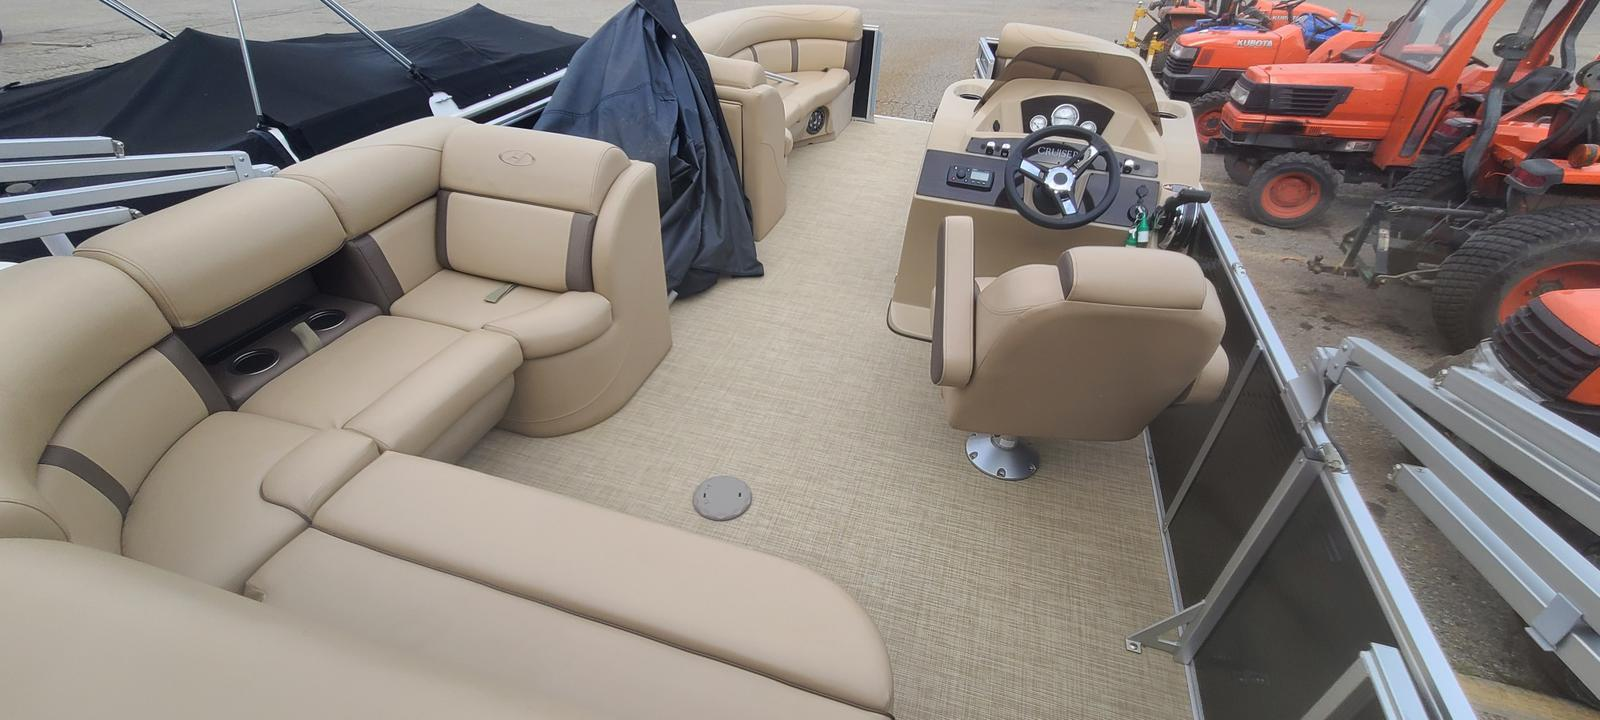 2019 Harris boat for sale, model of the boat is Cruiser 230 & Image # 7 of 10